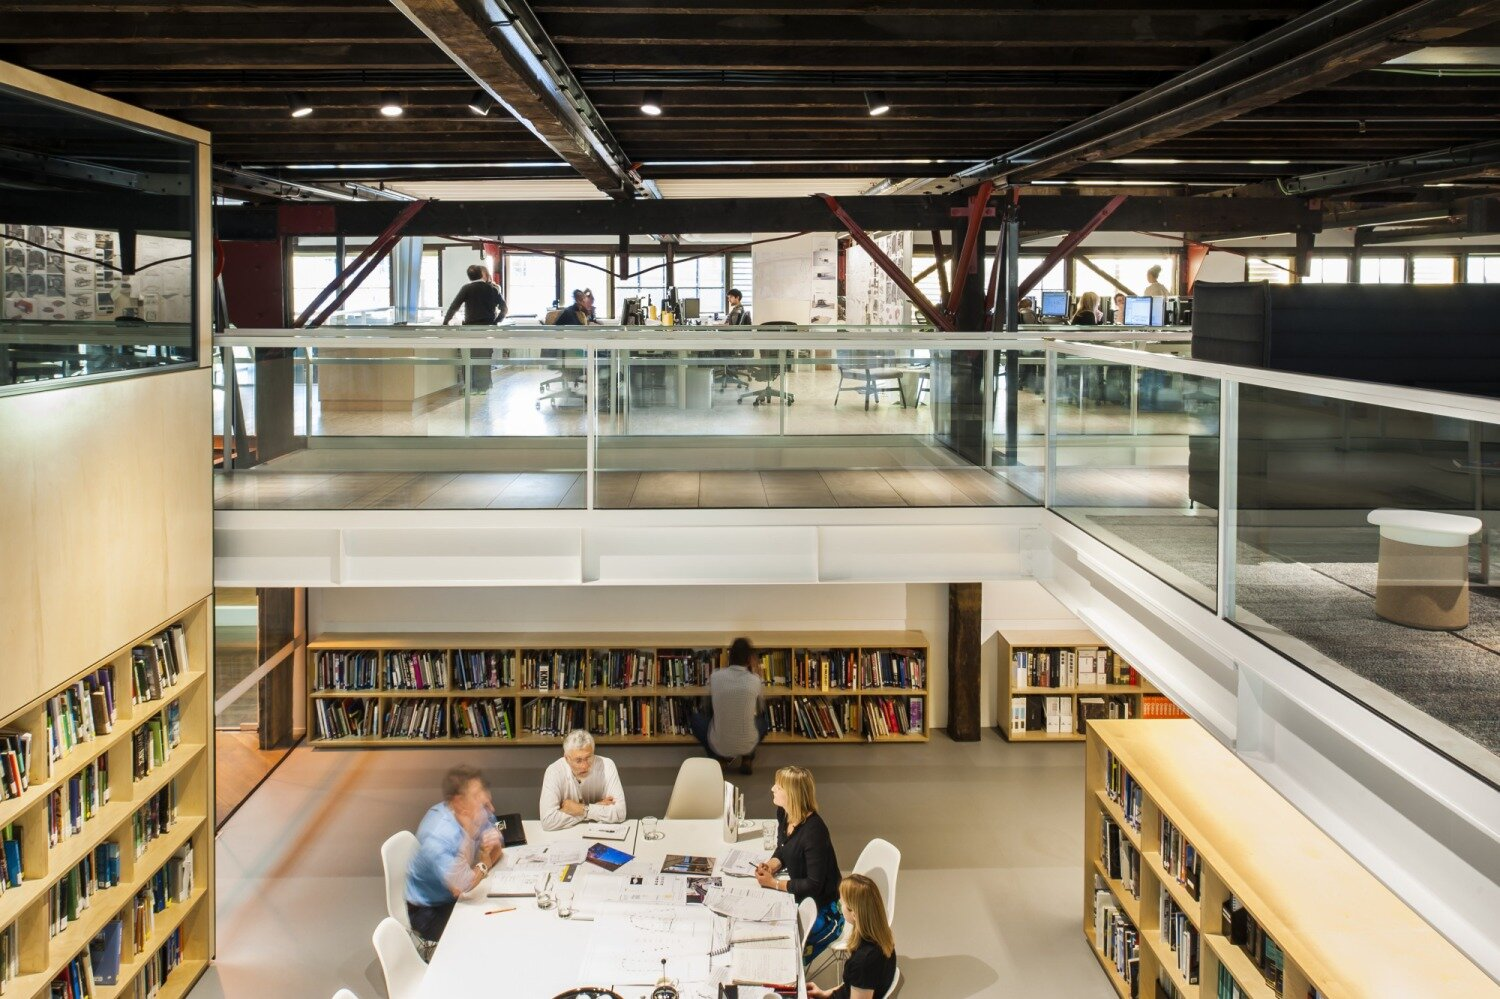 The Hassell Studio in Sydney blurs the lines between private and public spaces, with flexibility, daylight and natural materials that embody the design approach taken with clients from Atlassian to Arup and Lendlease. Photography © Nicole England.